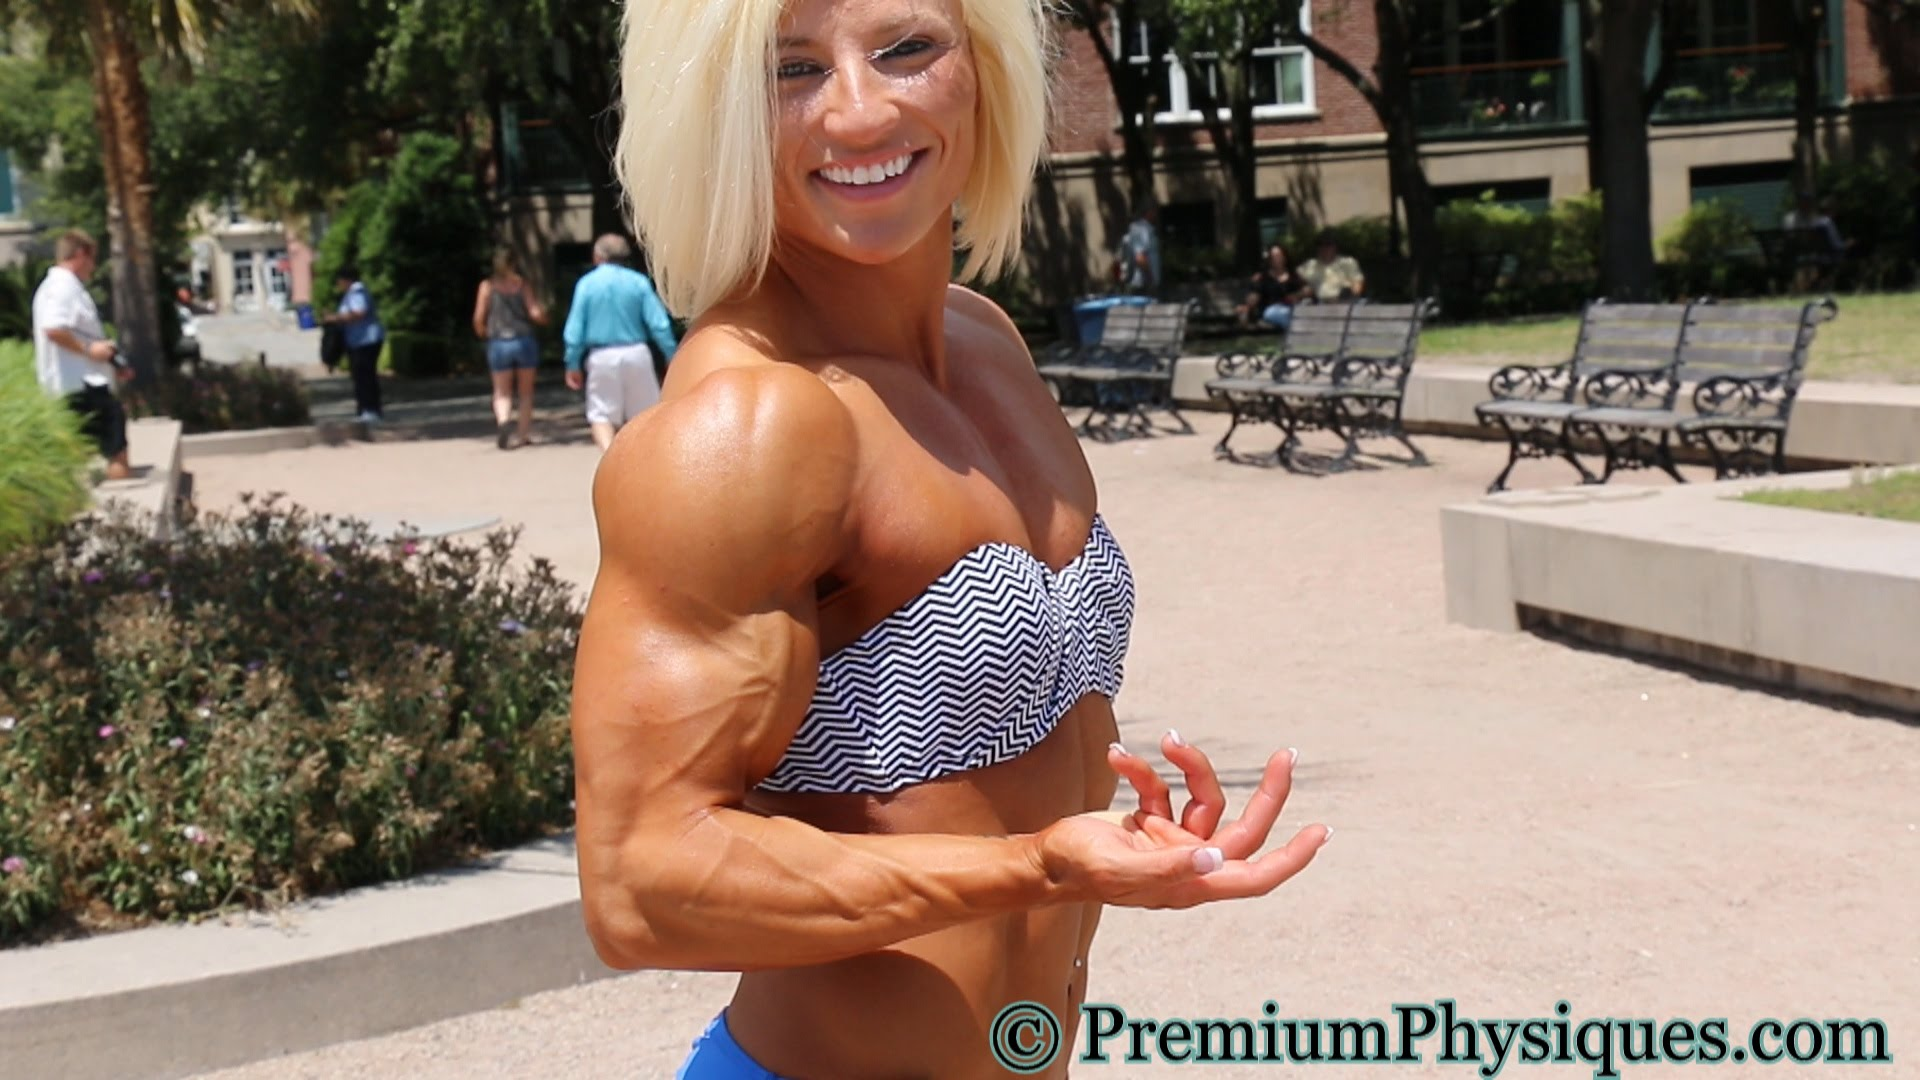 Brooke Walker – Muscular Model